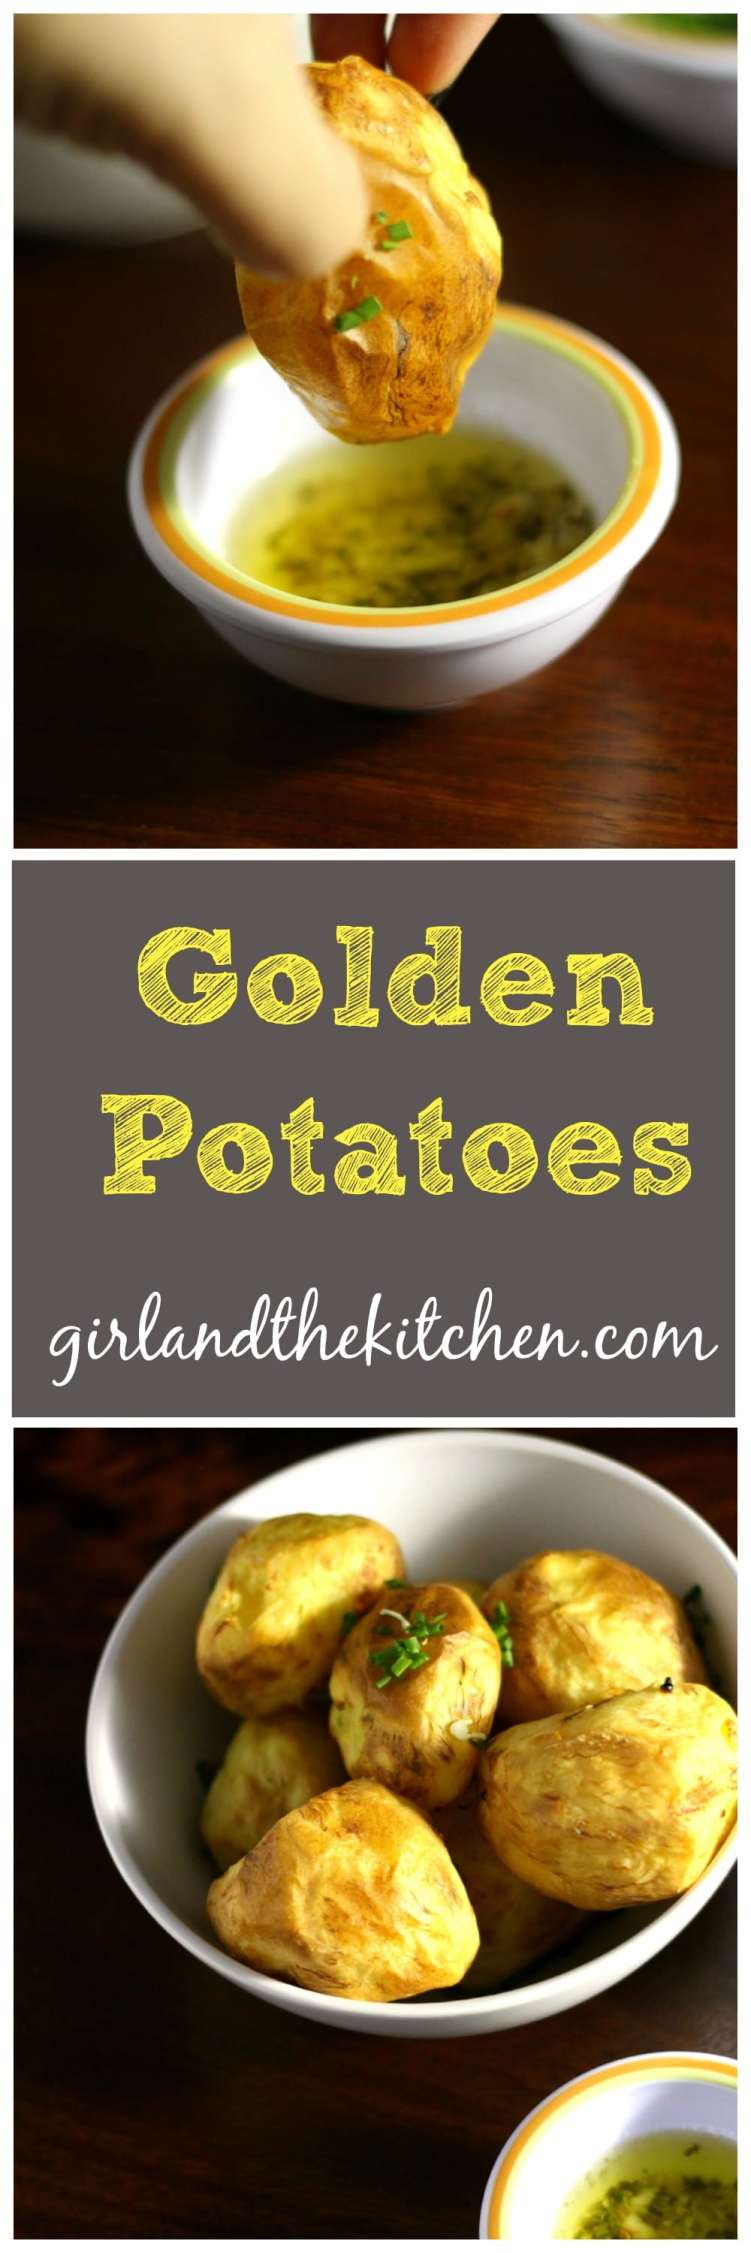 The simplest way to get gorgeously golden potatoes that are a super crunch perfect bite! Perfect as an appetizer or side dish! Serve it with the delicate garlic chive butter and this is a real crowd pleaser!